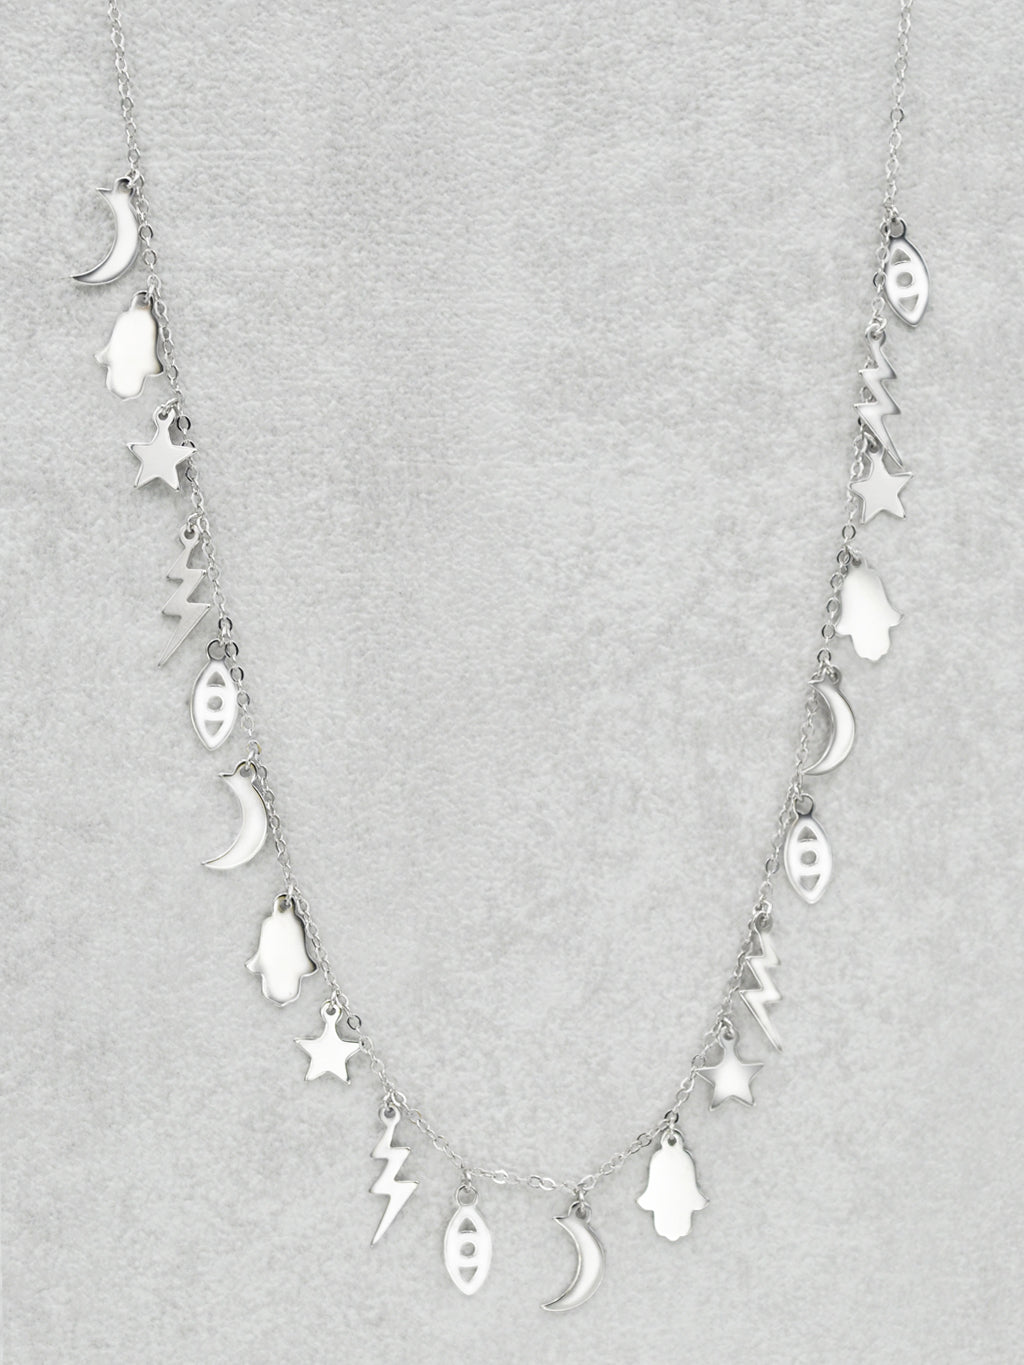 Celestial Magic Necklace - Sterling Silver